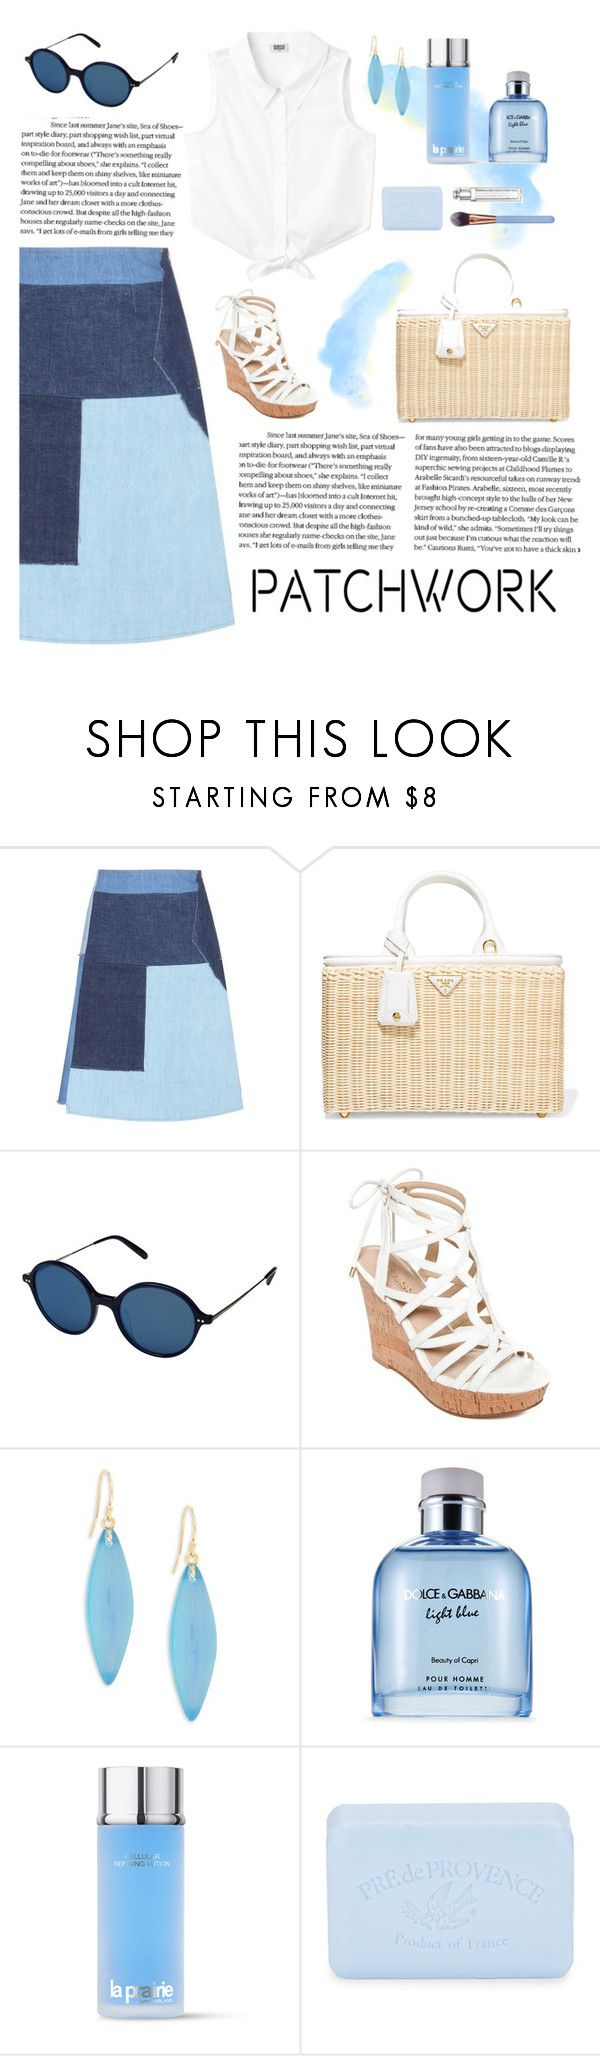 """Patchwork"" by dere-dei ❤ liked on Polyvore featuring M.i.h Jeans, Prada, Oliver Peoples, GUESS, Alexis Bittar, Dolce&Gabbana, La Prairie, Pré de Provence and Luxie"